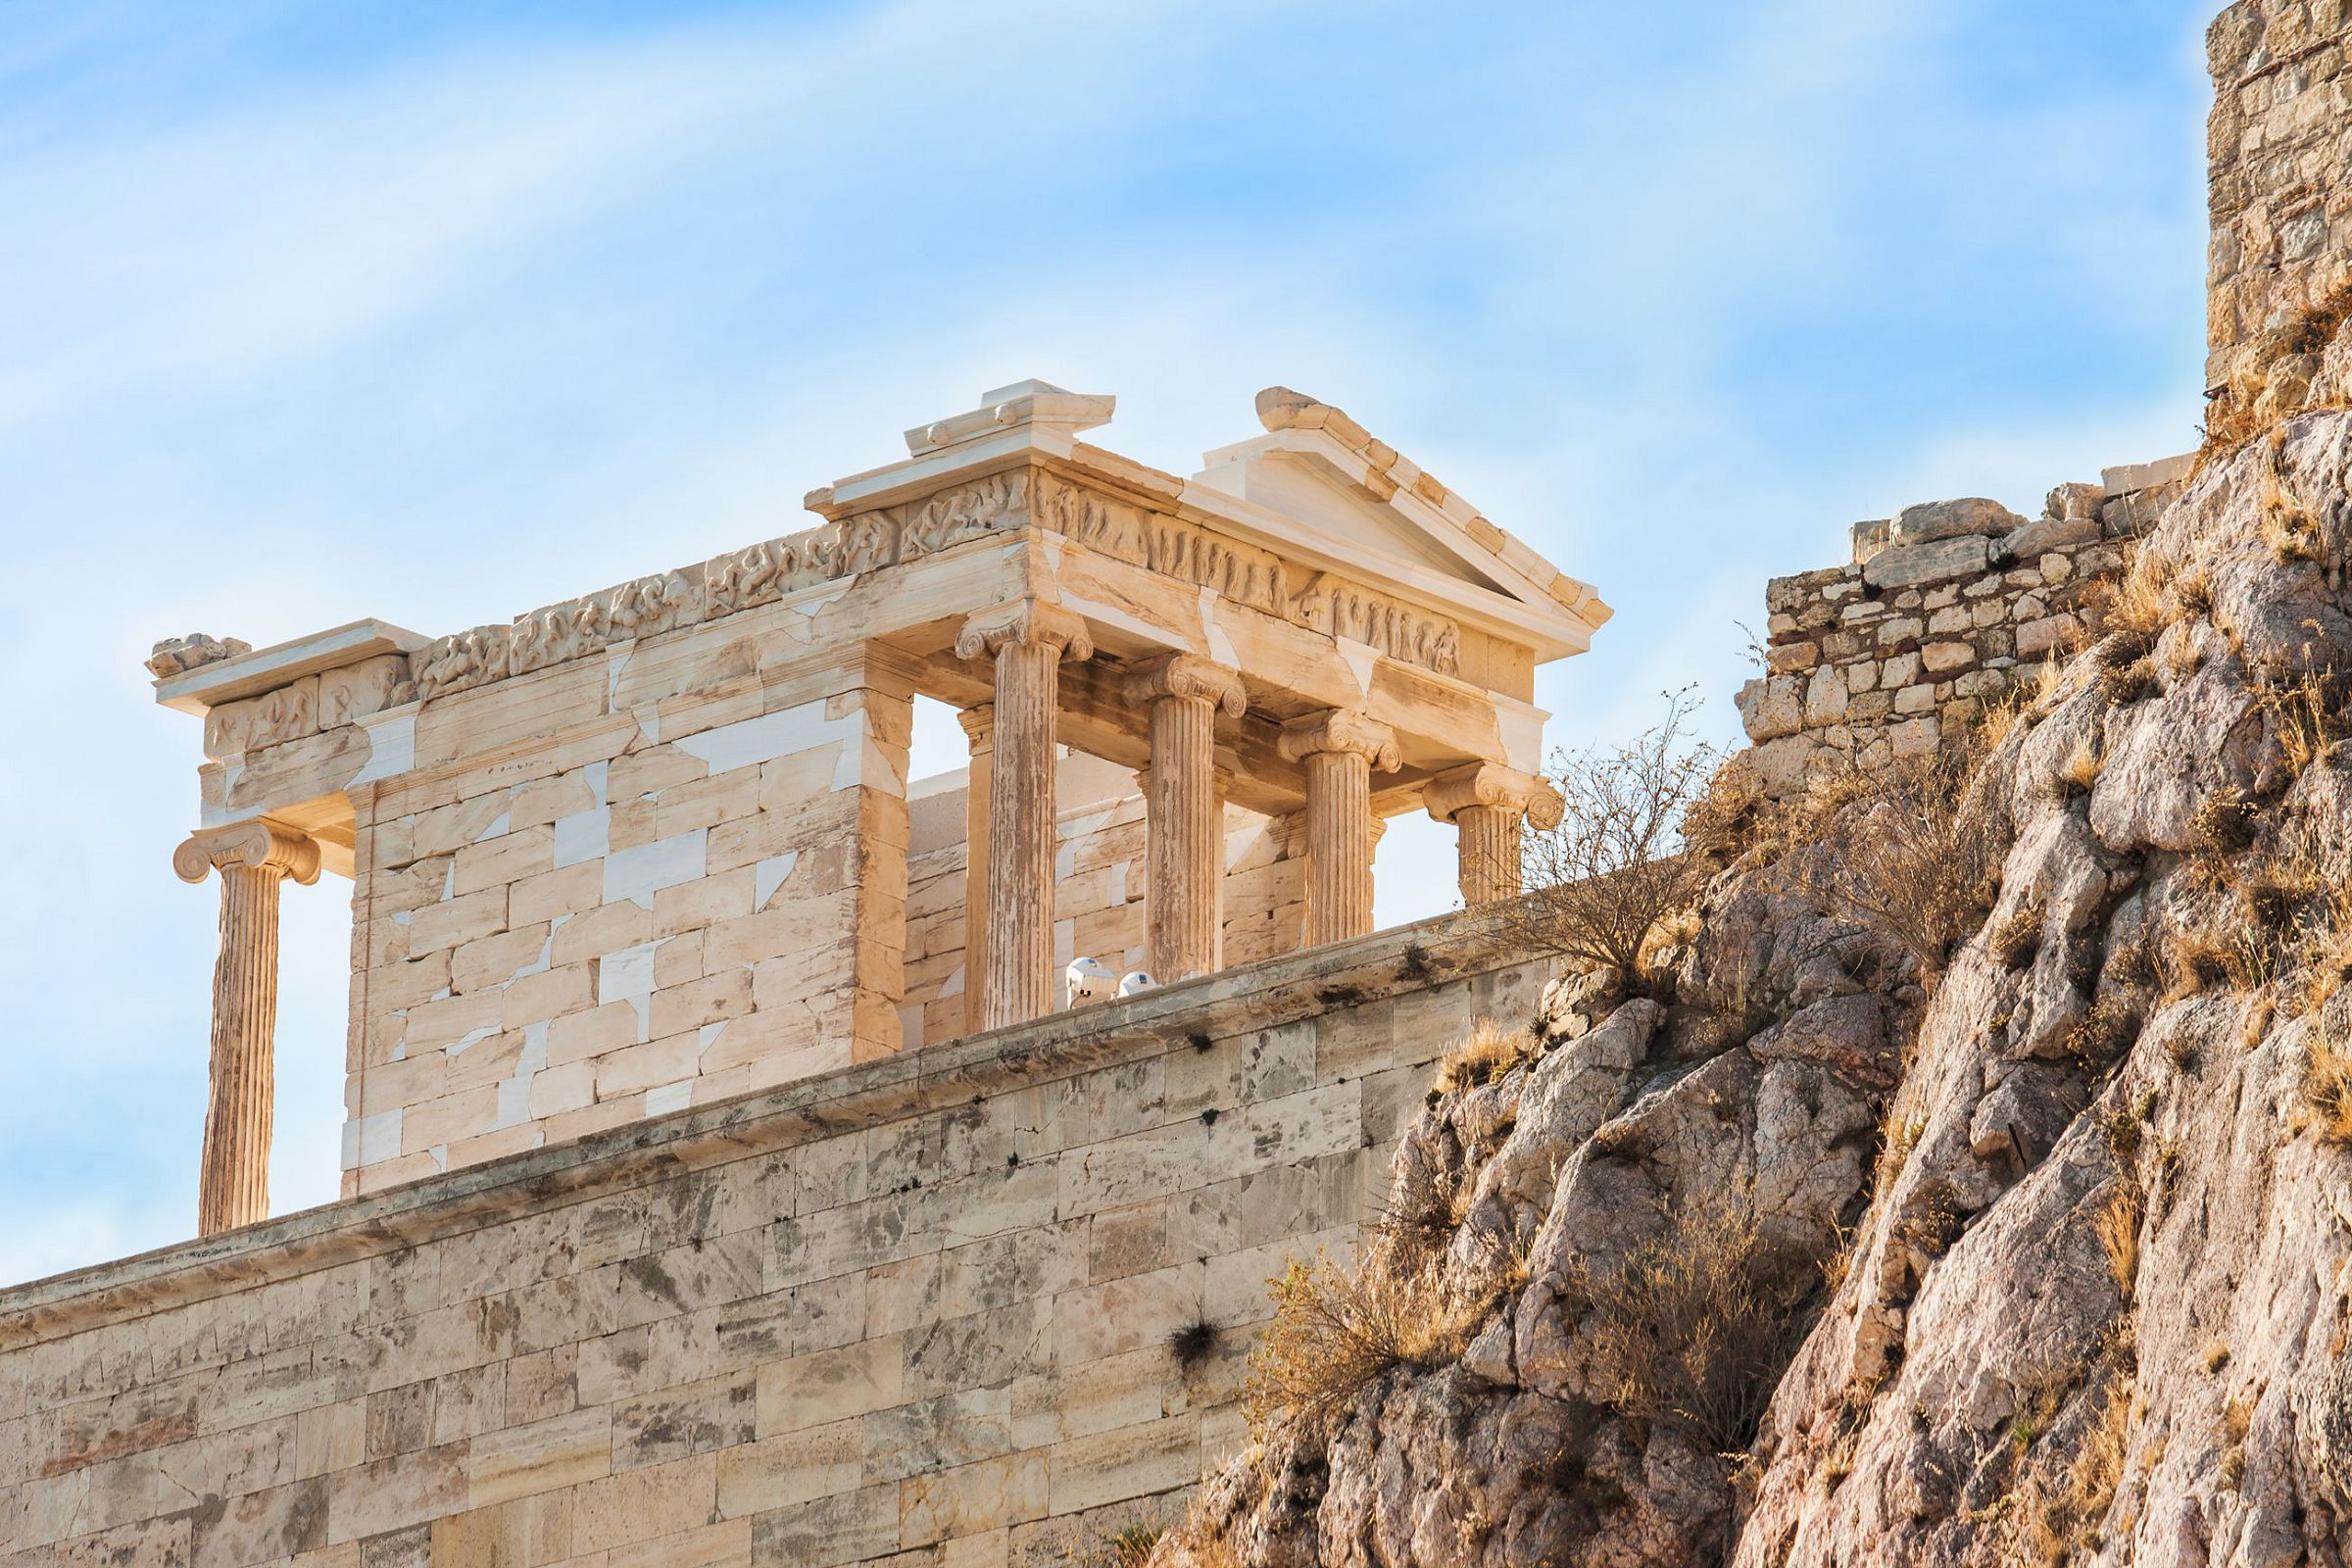 The Temple Of Nike In Acropolis, Greece